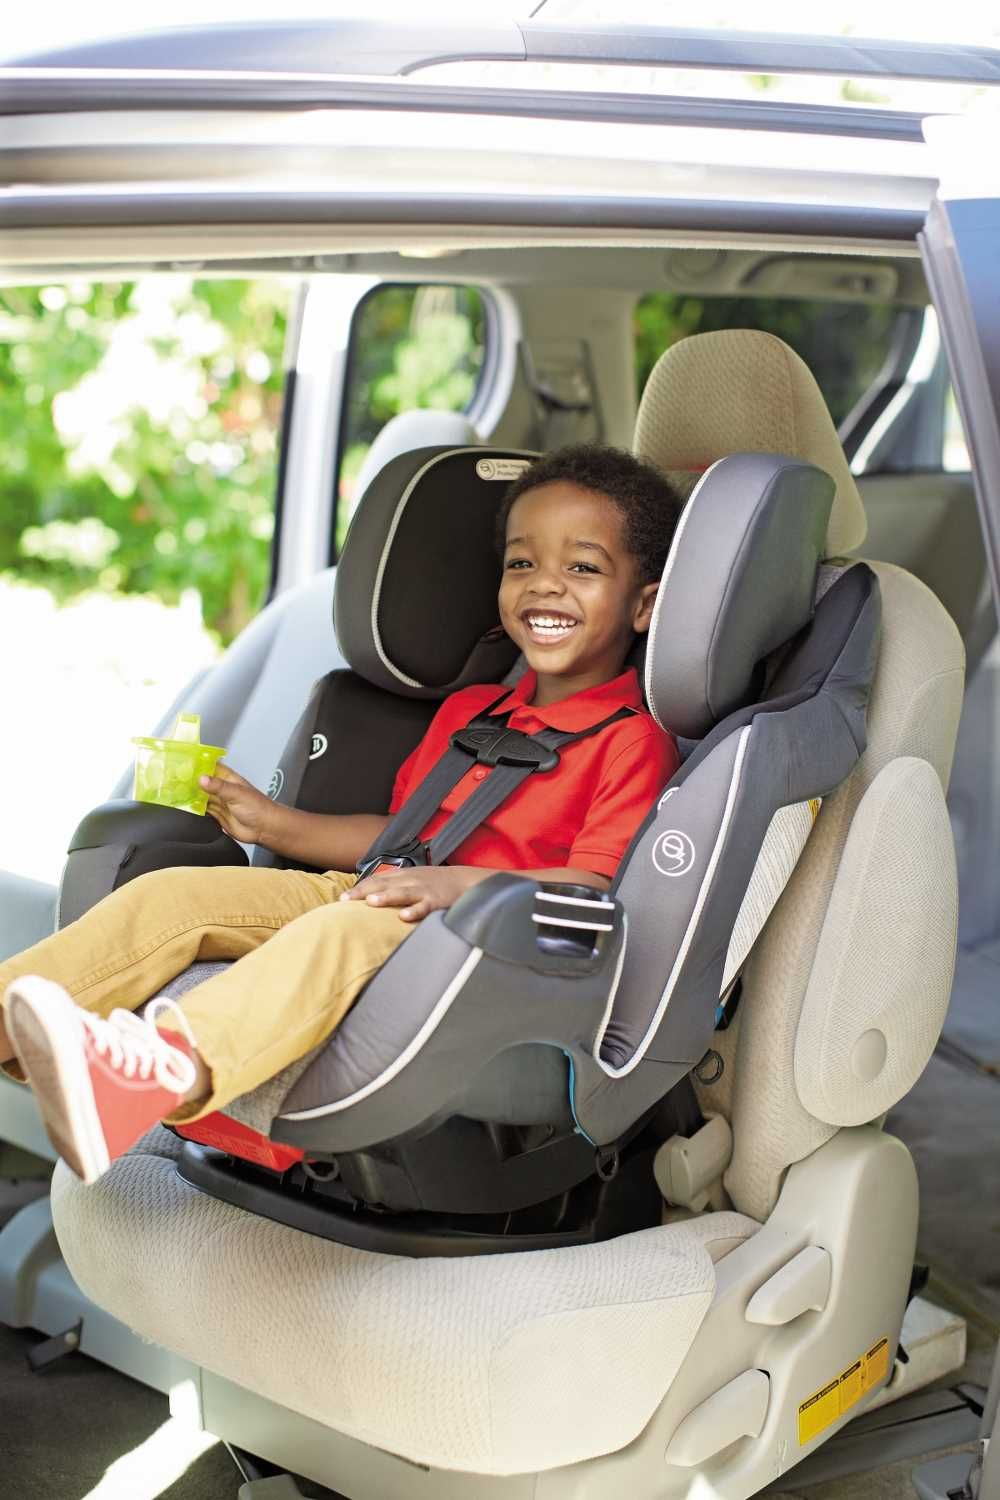 Our Exclusive Evenflo Symphony DLX Platinum All In One Car Seat Now Offers Parents Superior E3 Side Impact Protection To Keep Their Child Safe Alongside